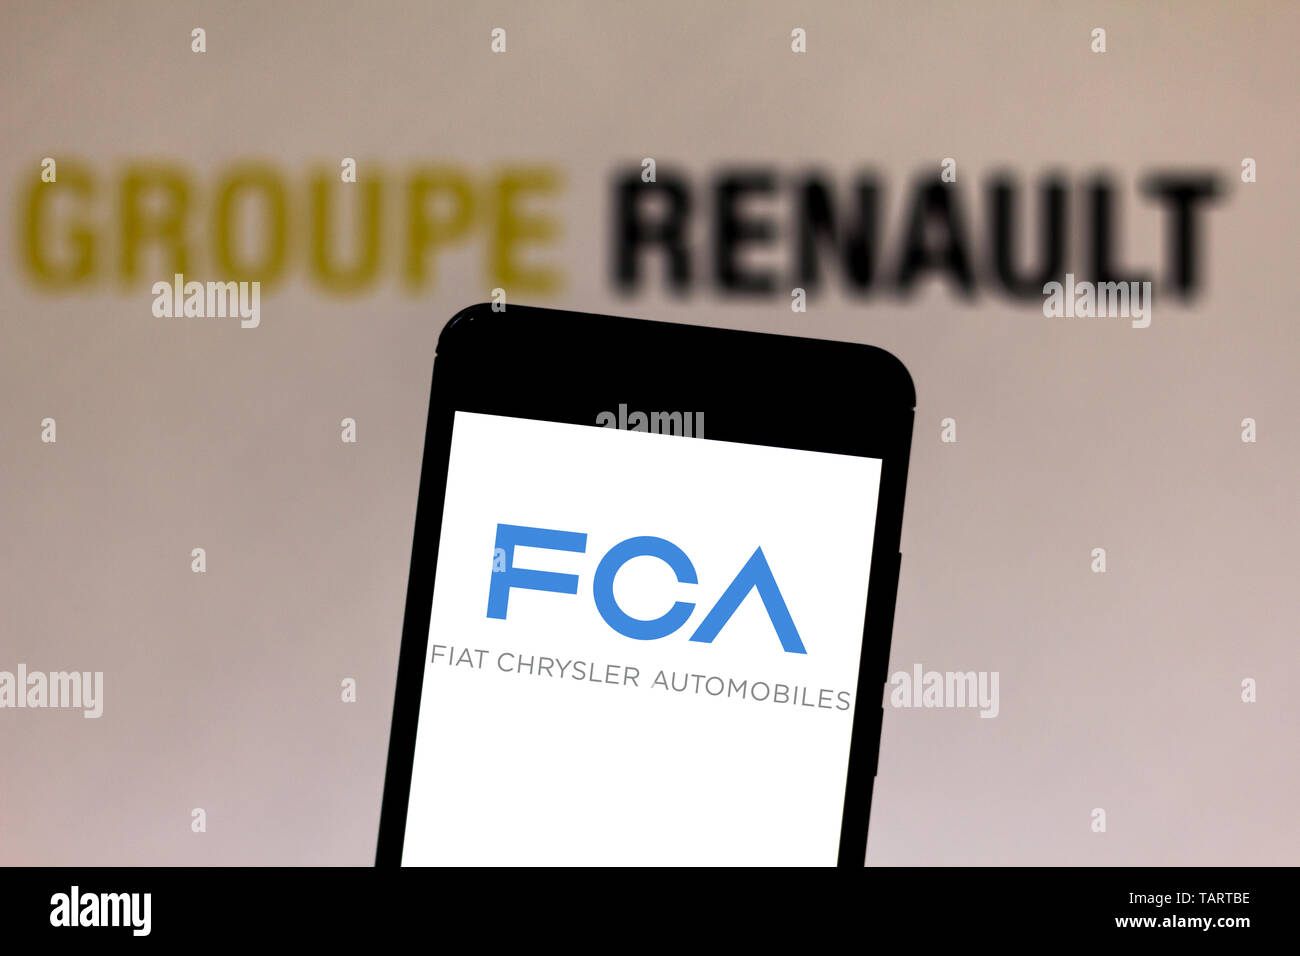 In this photo illustration the Fiat Chrysler Automobiles logo is seen displayed on a smartphone. Stock Photo